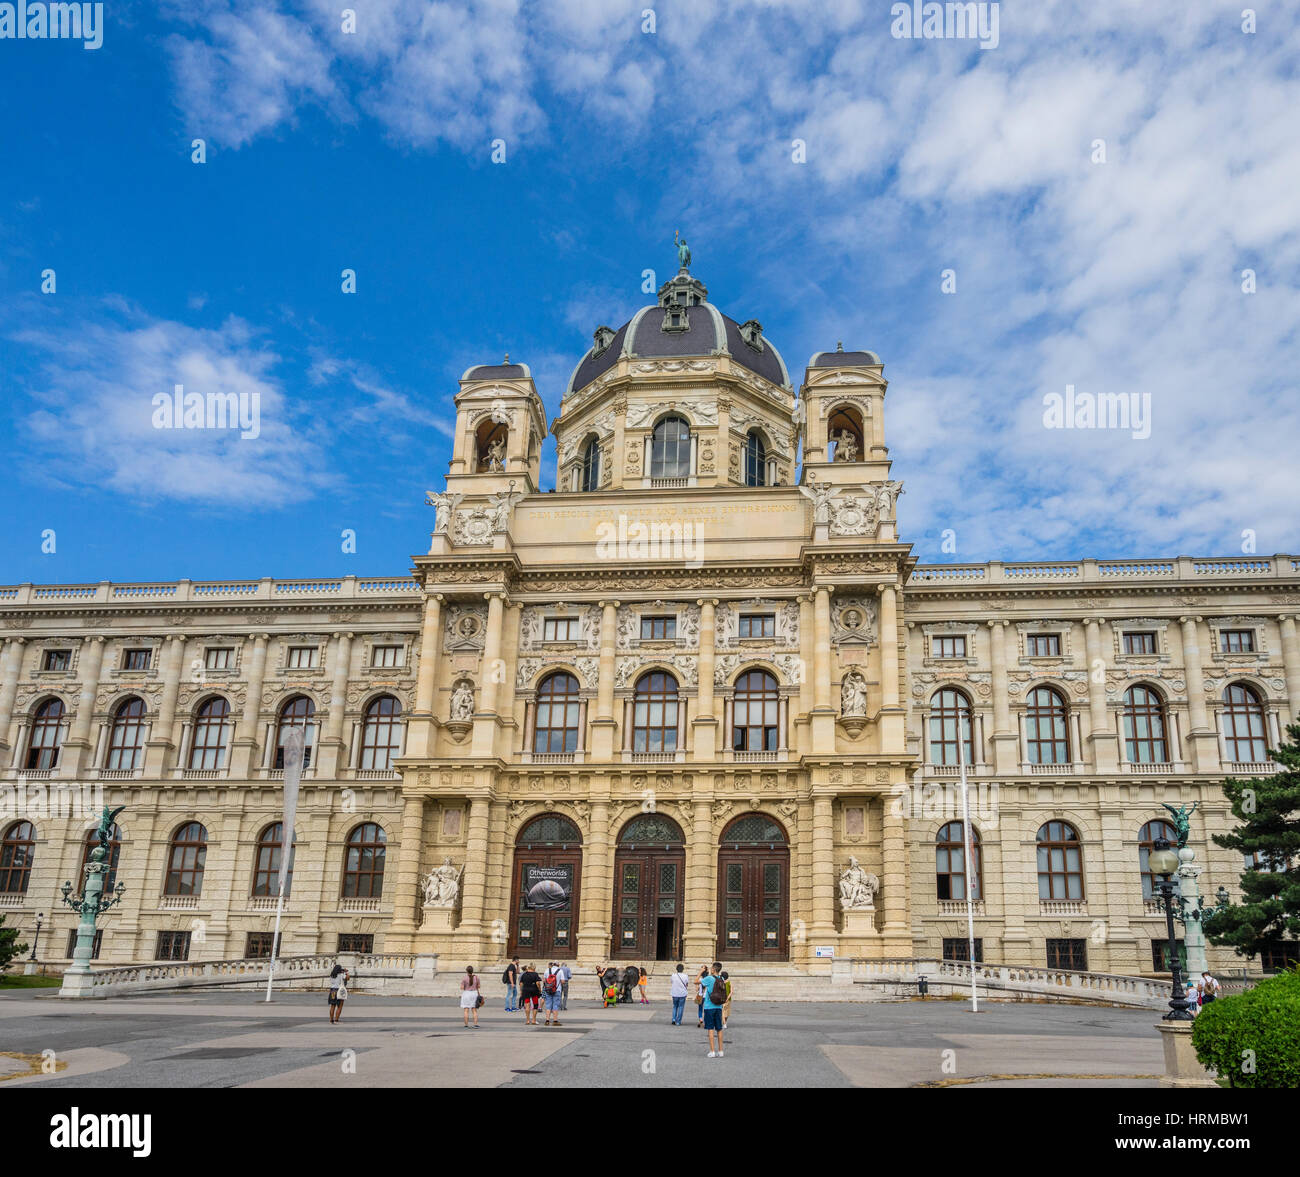 Austria, Vienna, Maria-Theresien-Platz, portal of the Museum of Natural History - Stock Image